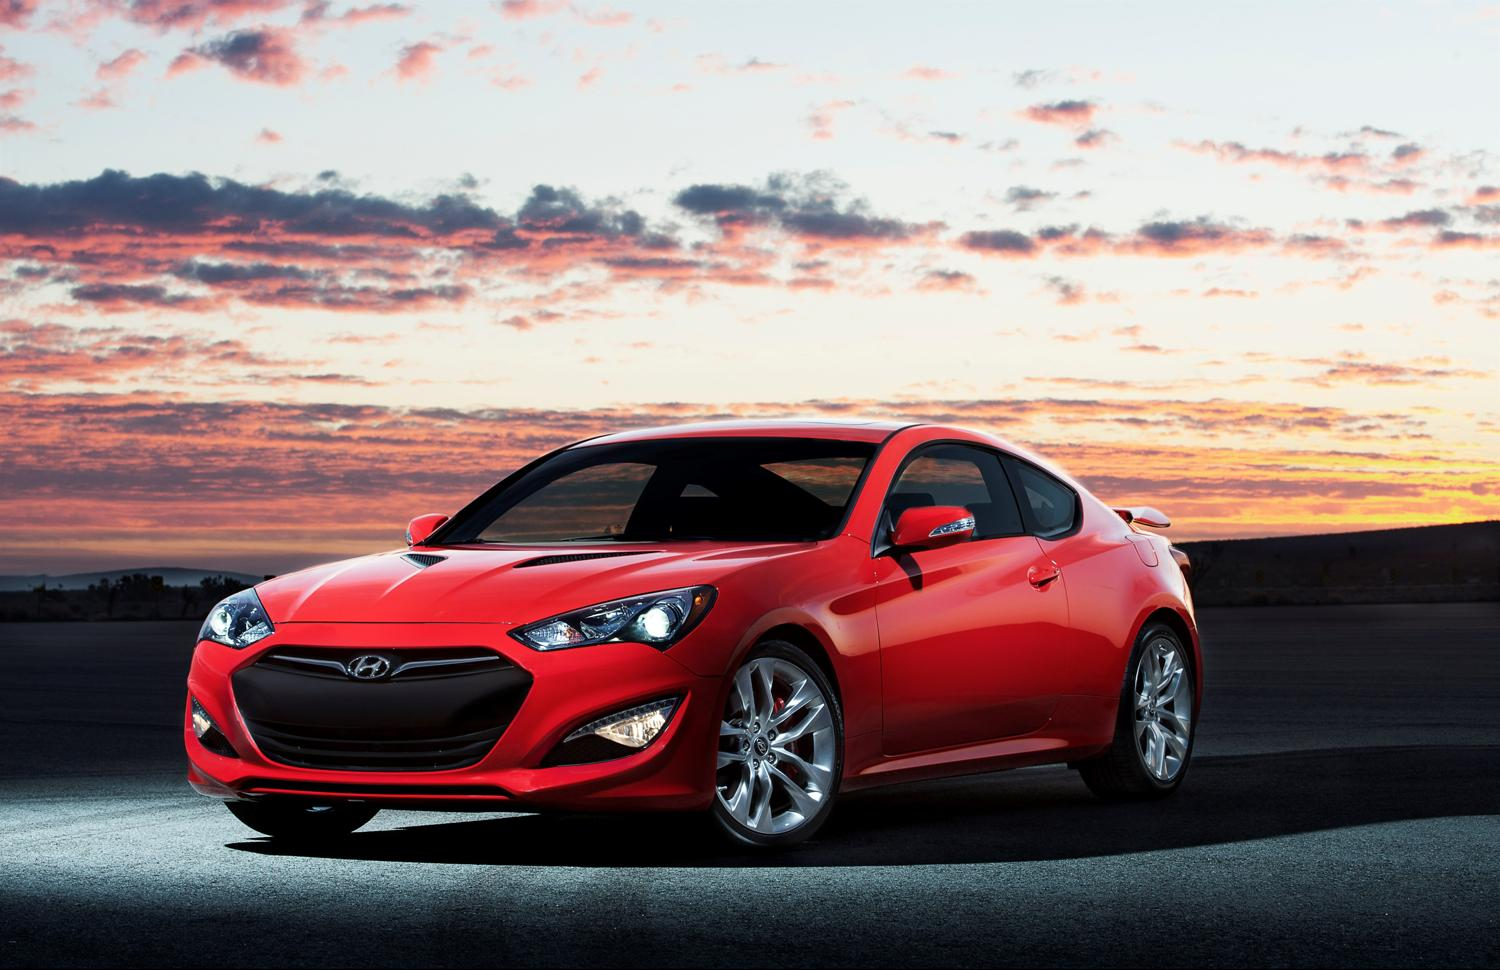 hyundai s vaporous n performance line gets some substance with new genesis coupe rumors. Black Bedroom Furniture Sets. Home Design Ideas